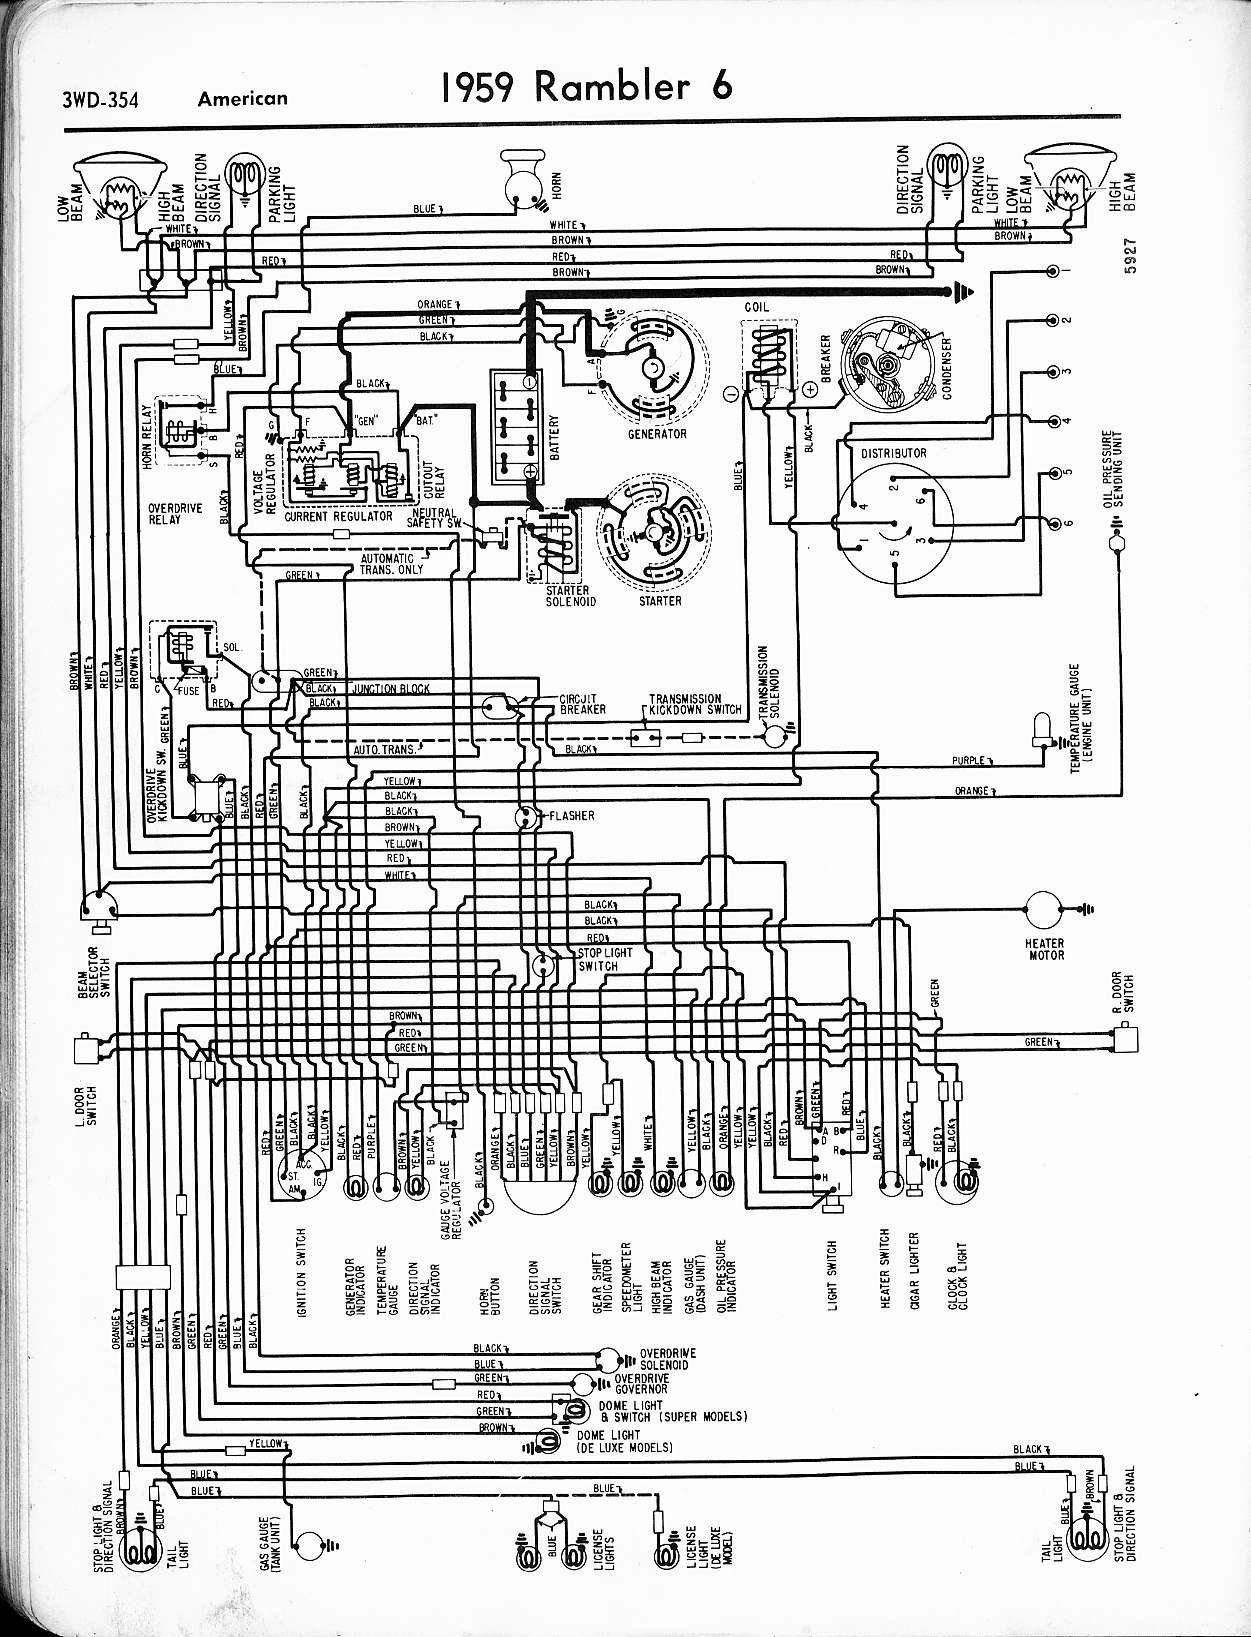 Car Manual Diagram Wiring Todays Gearbox Rambler Diagrams The Old Project Transmission